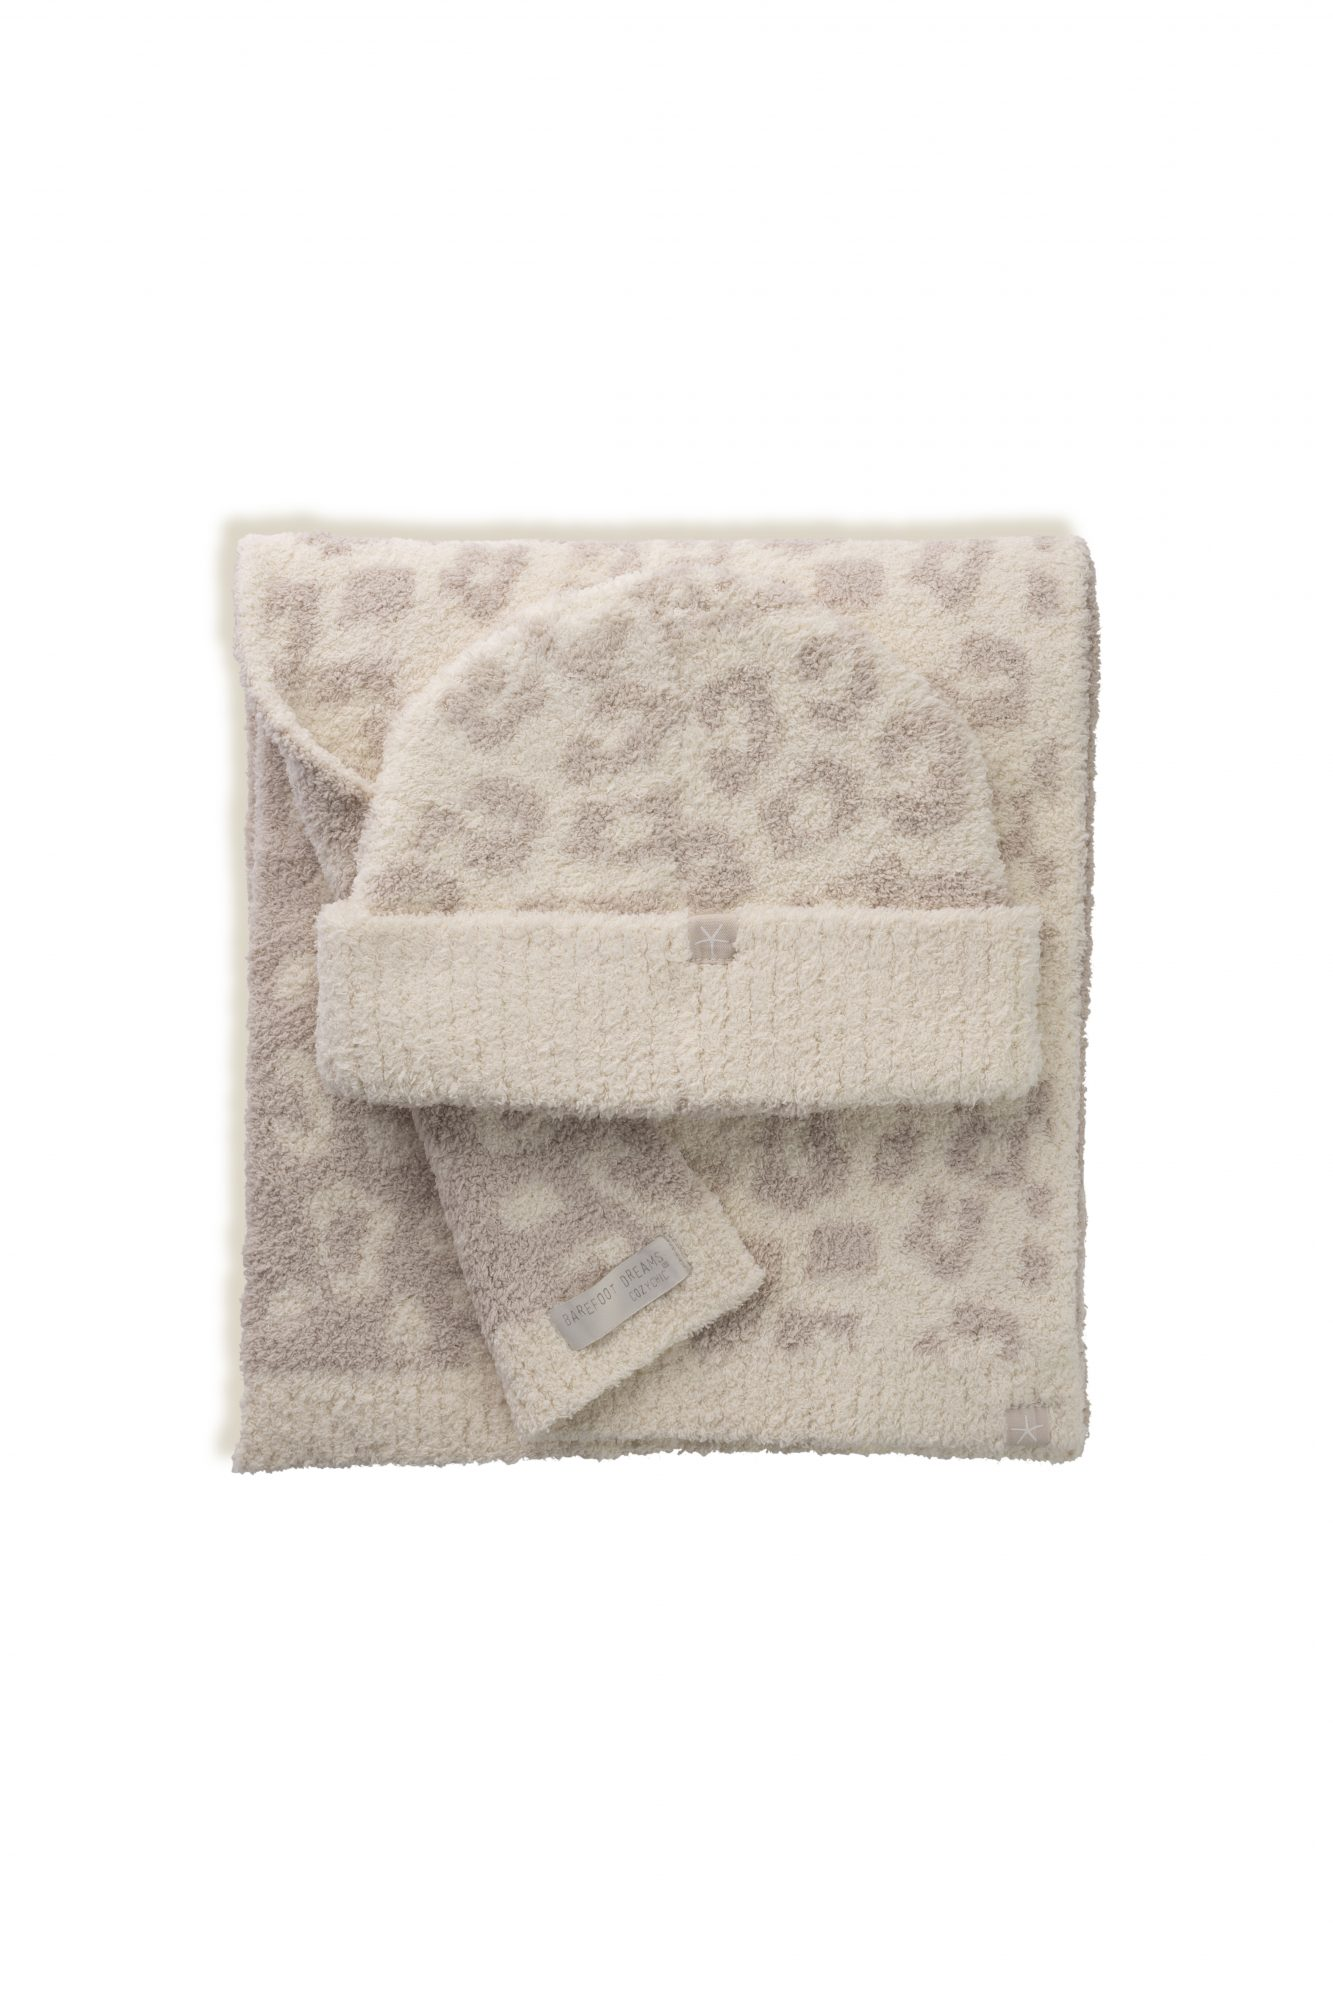 Not your average cold-weather accessories, this duo comes in the brand's signature lightweight, yet incredibly warm microfiber fabric.                                       Buy It!Barefoot Dreams, $88; barefootdreams.com